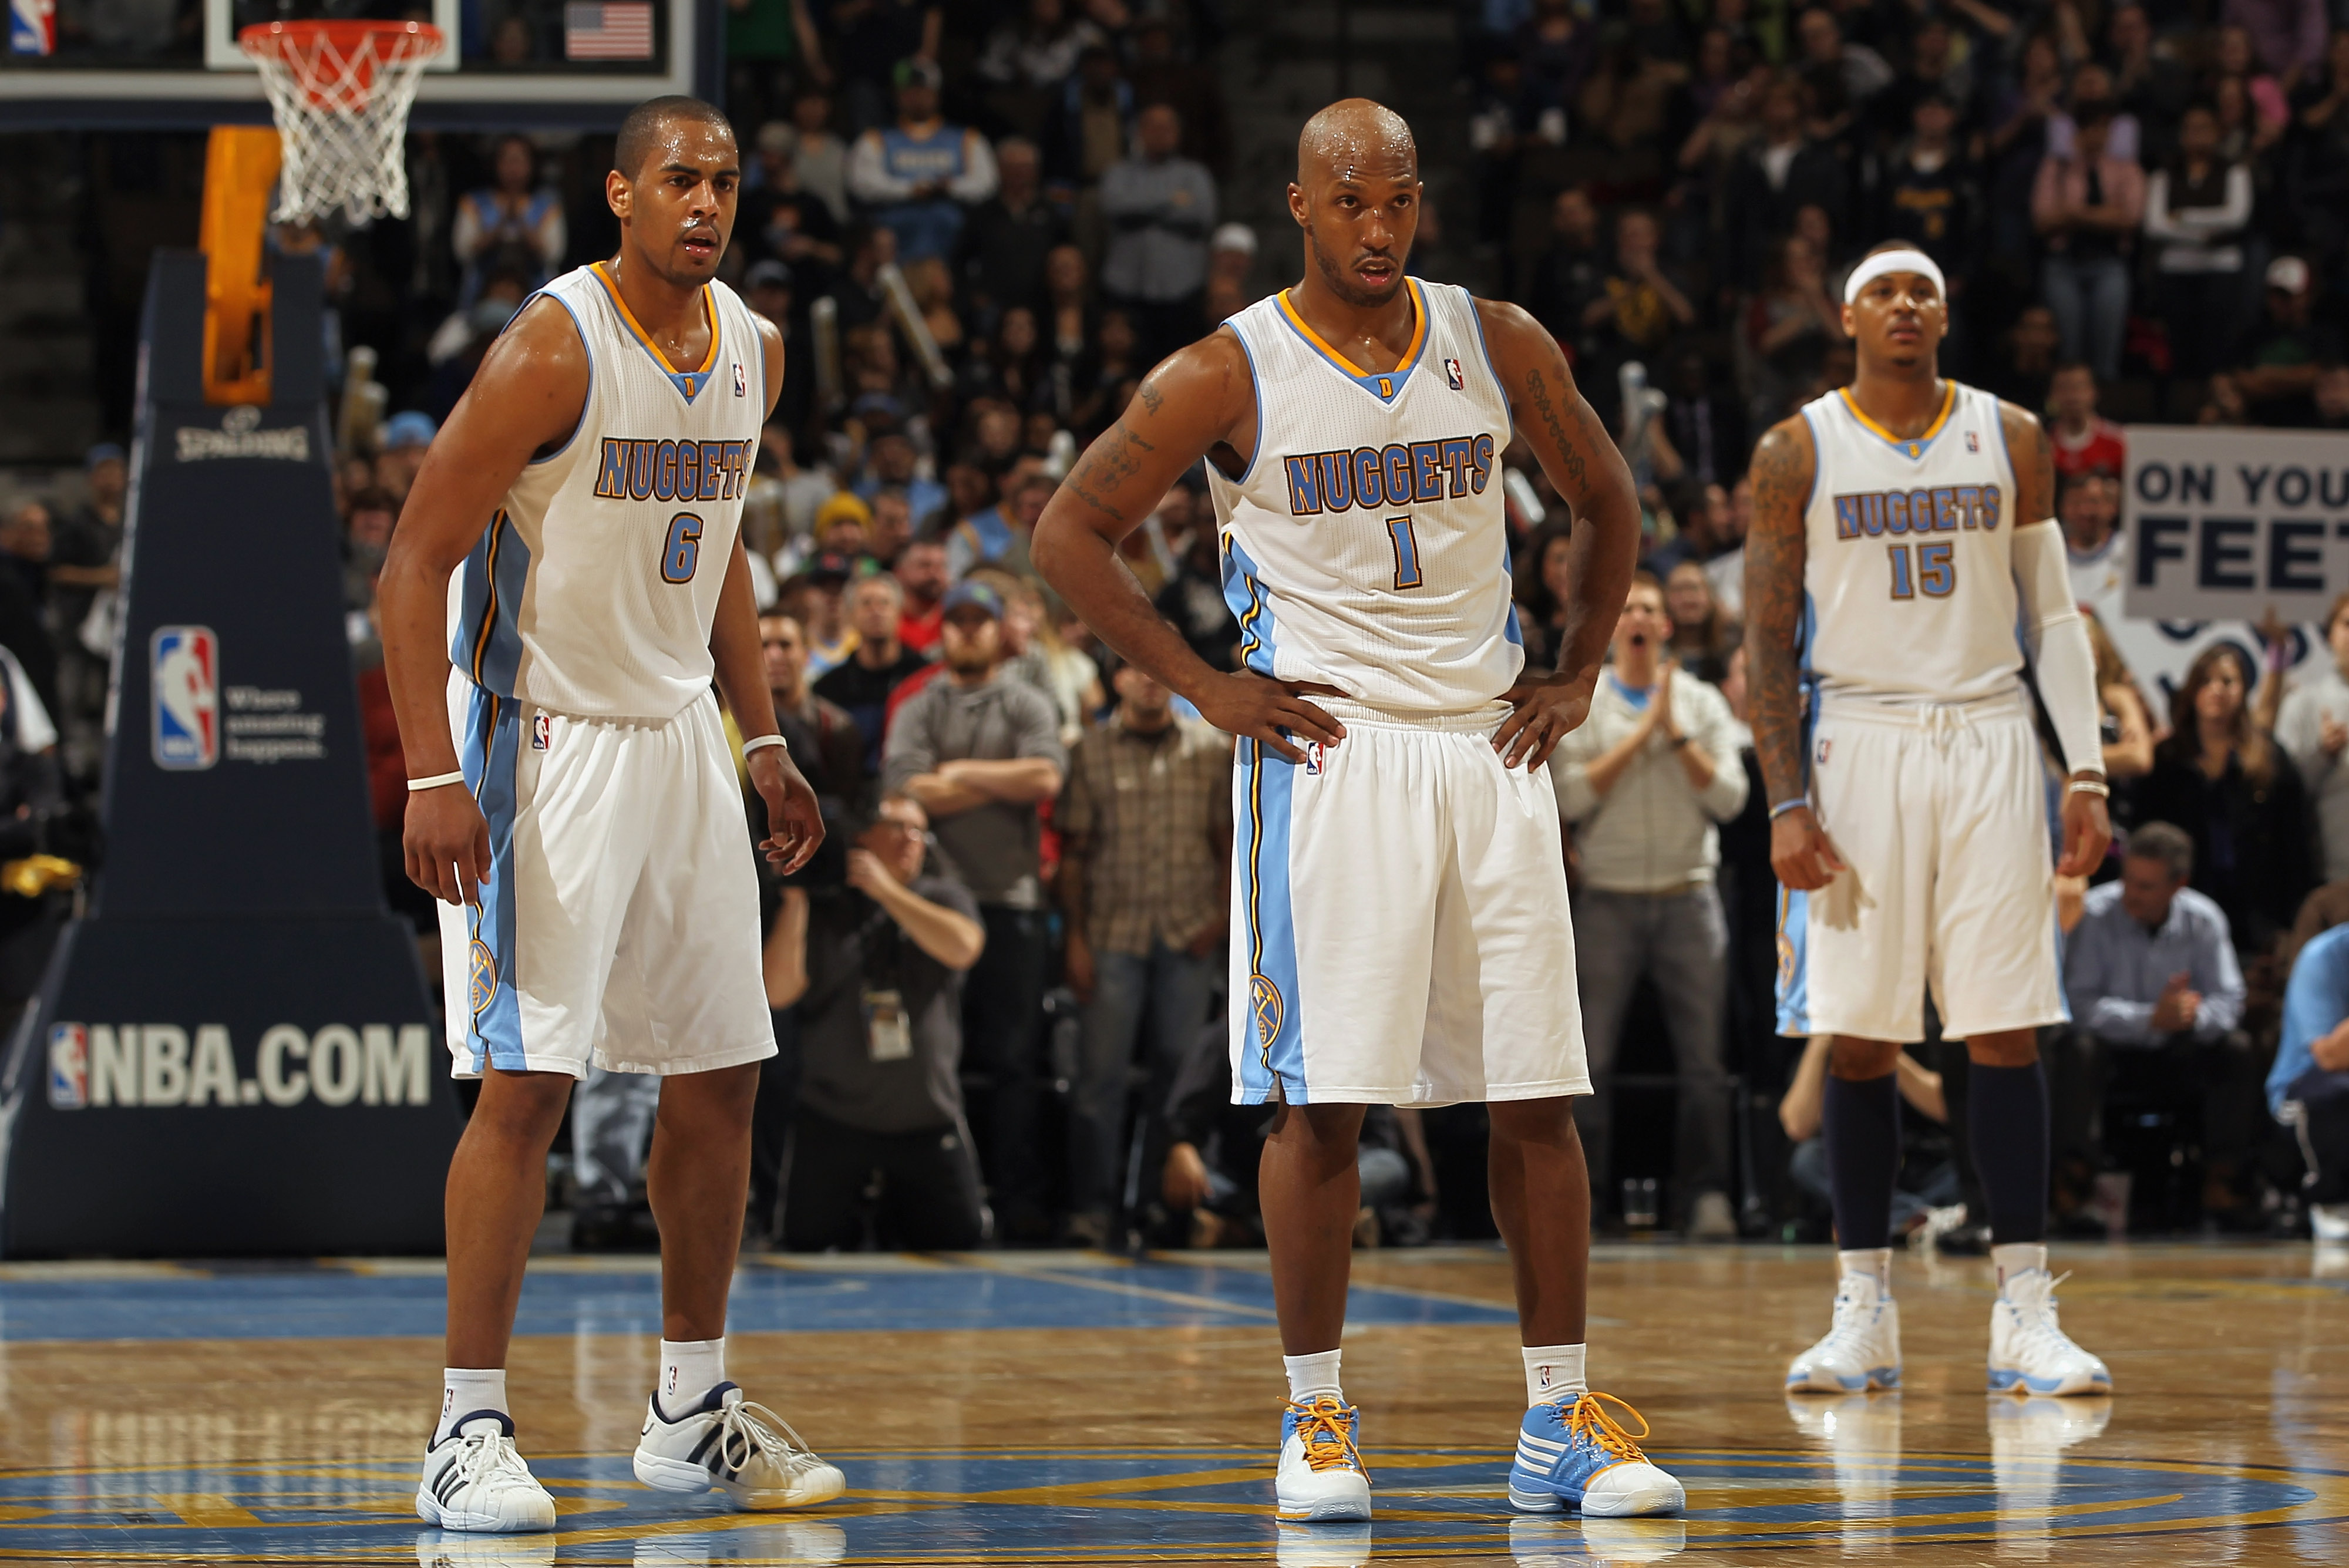 DENVER, CO - FEBRUARY 10:  Arron Afflalo #6, Chauncey Billups #1 and Carmelo Anthony #15 of the Denver Nuggets look on during a break in the action against the Dallas Mavericks during NBA action at the Pepsi Center on February 10, 2011 in Denver, Colorado